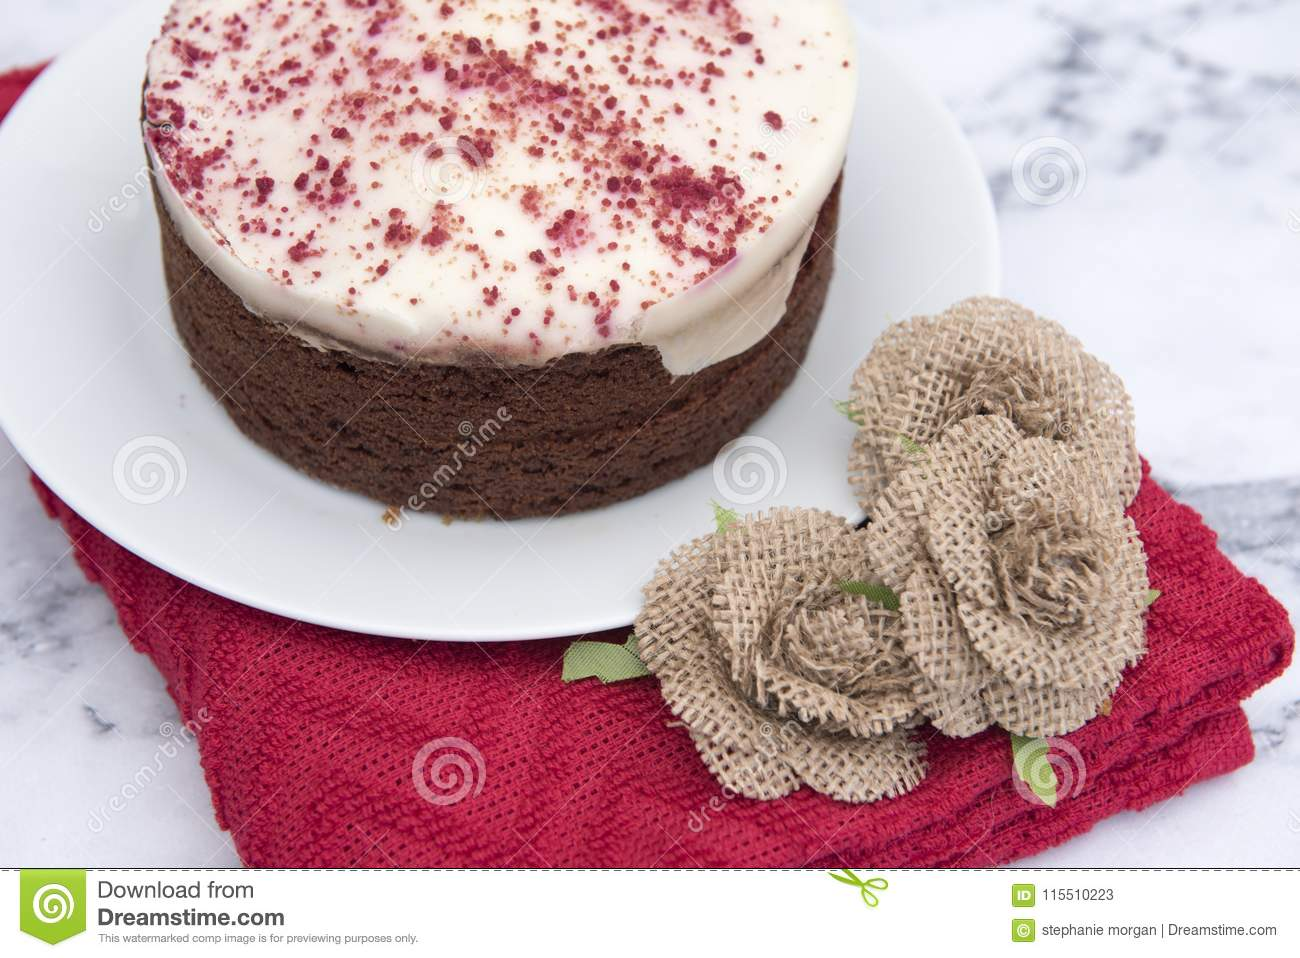 Red velvet cake, with a red cloth